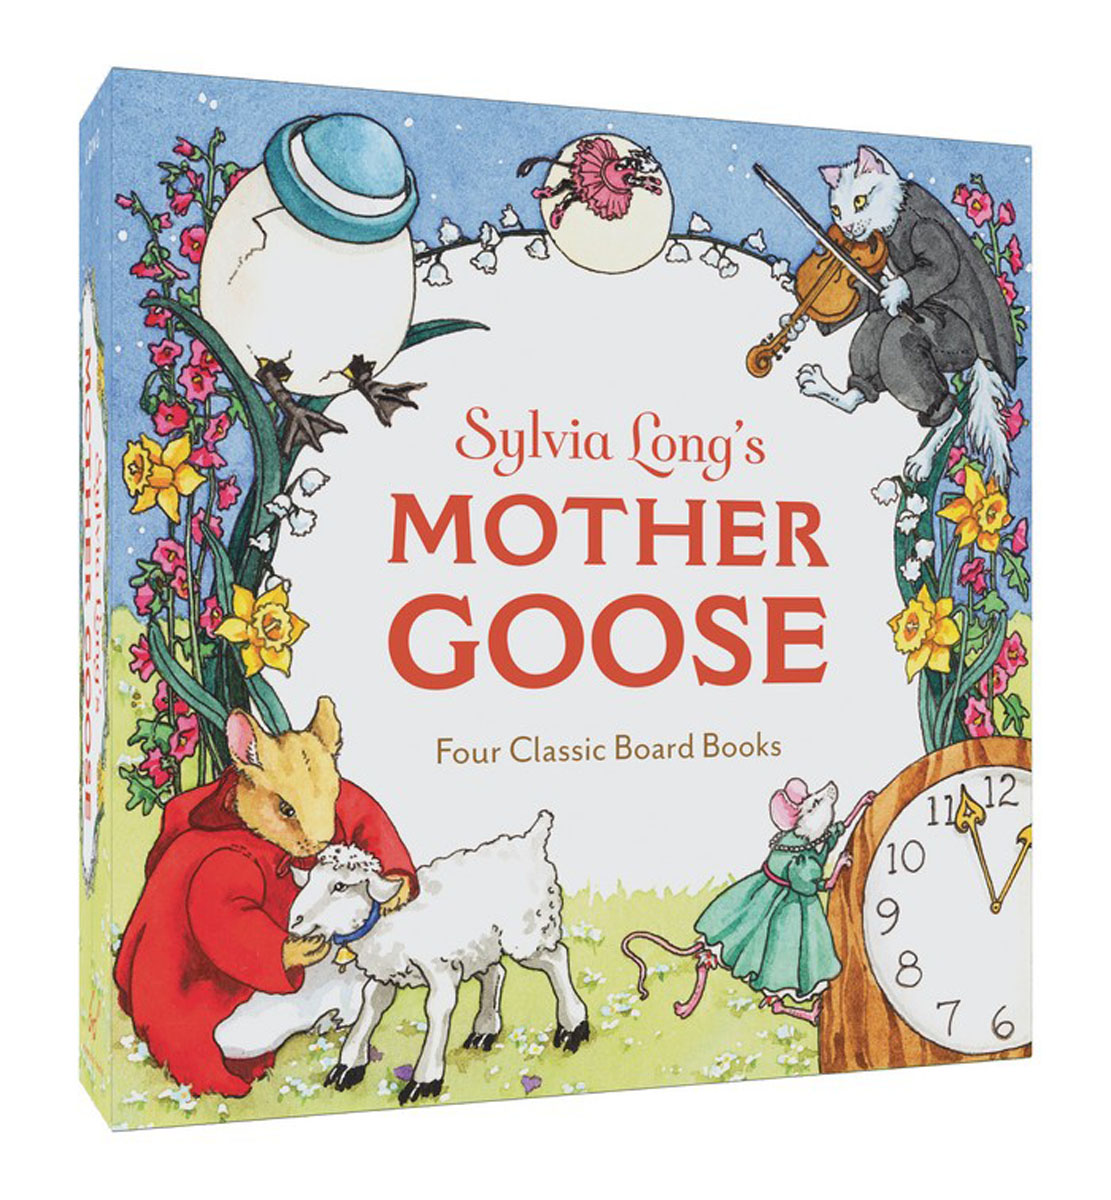 Sylvia Long's Mother Goose a decision support tool for library book inventory management